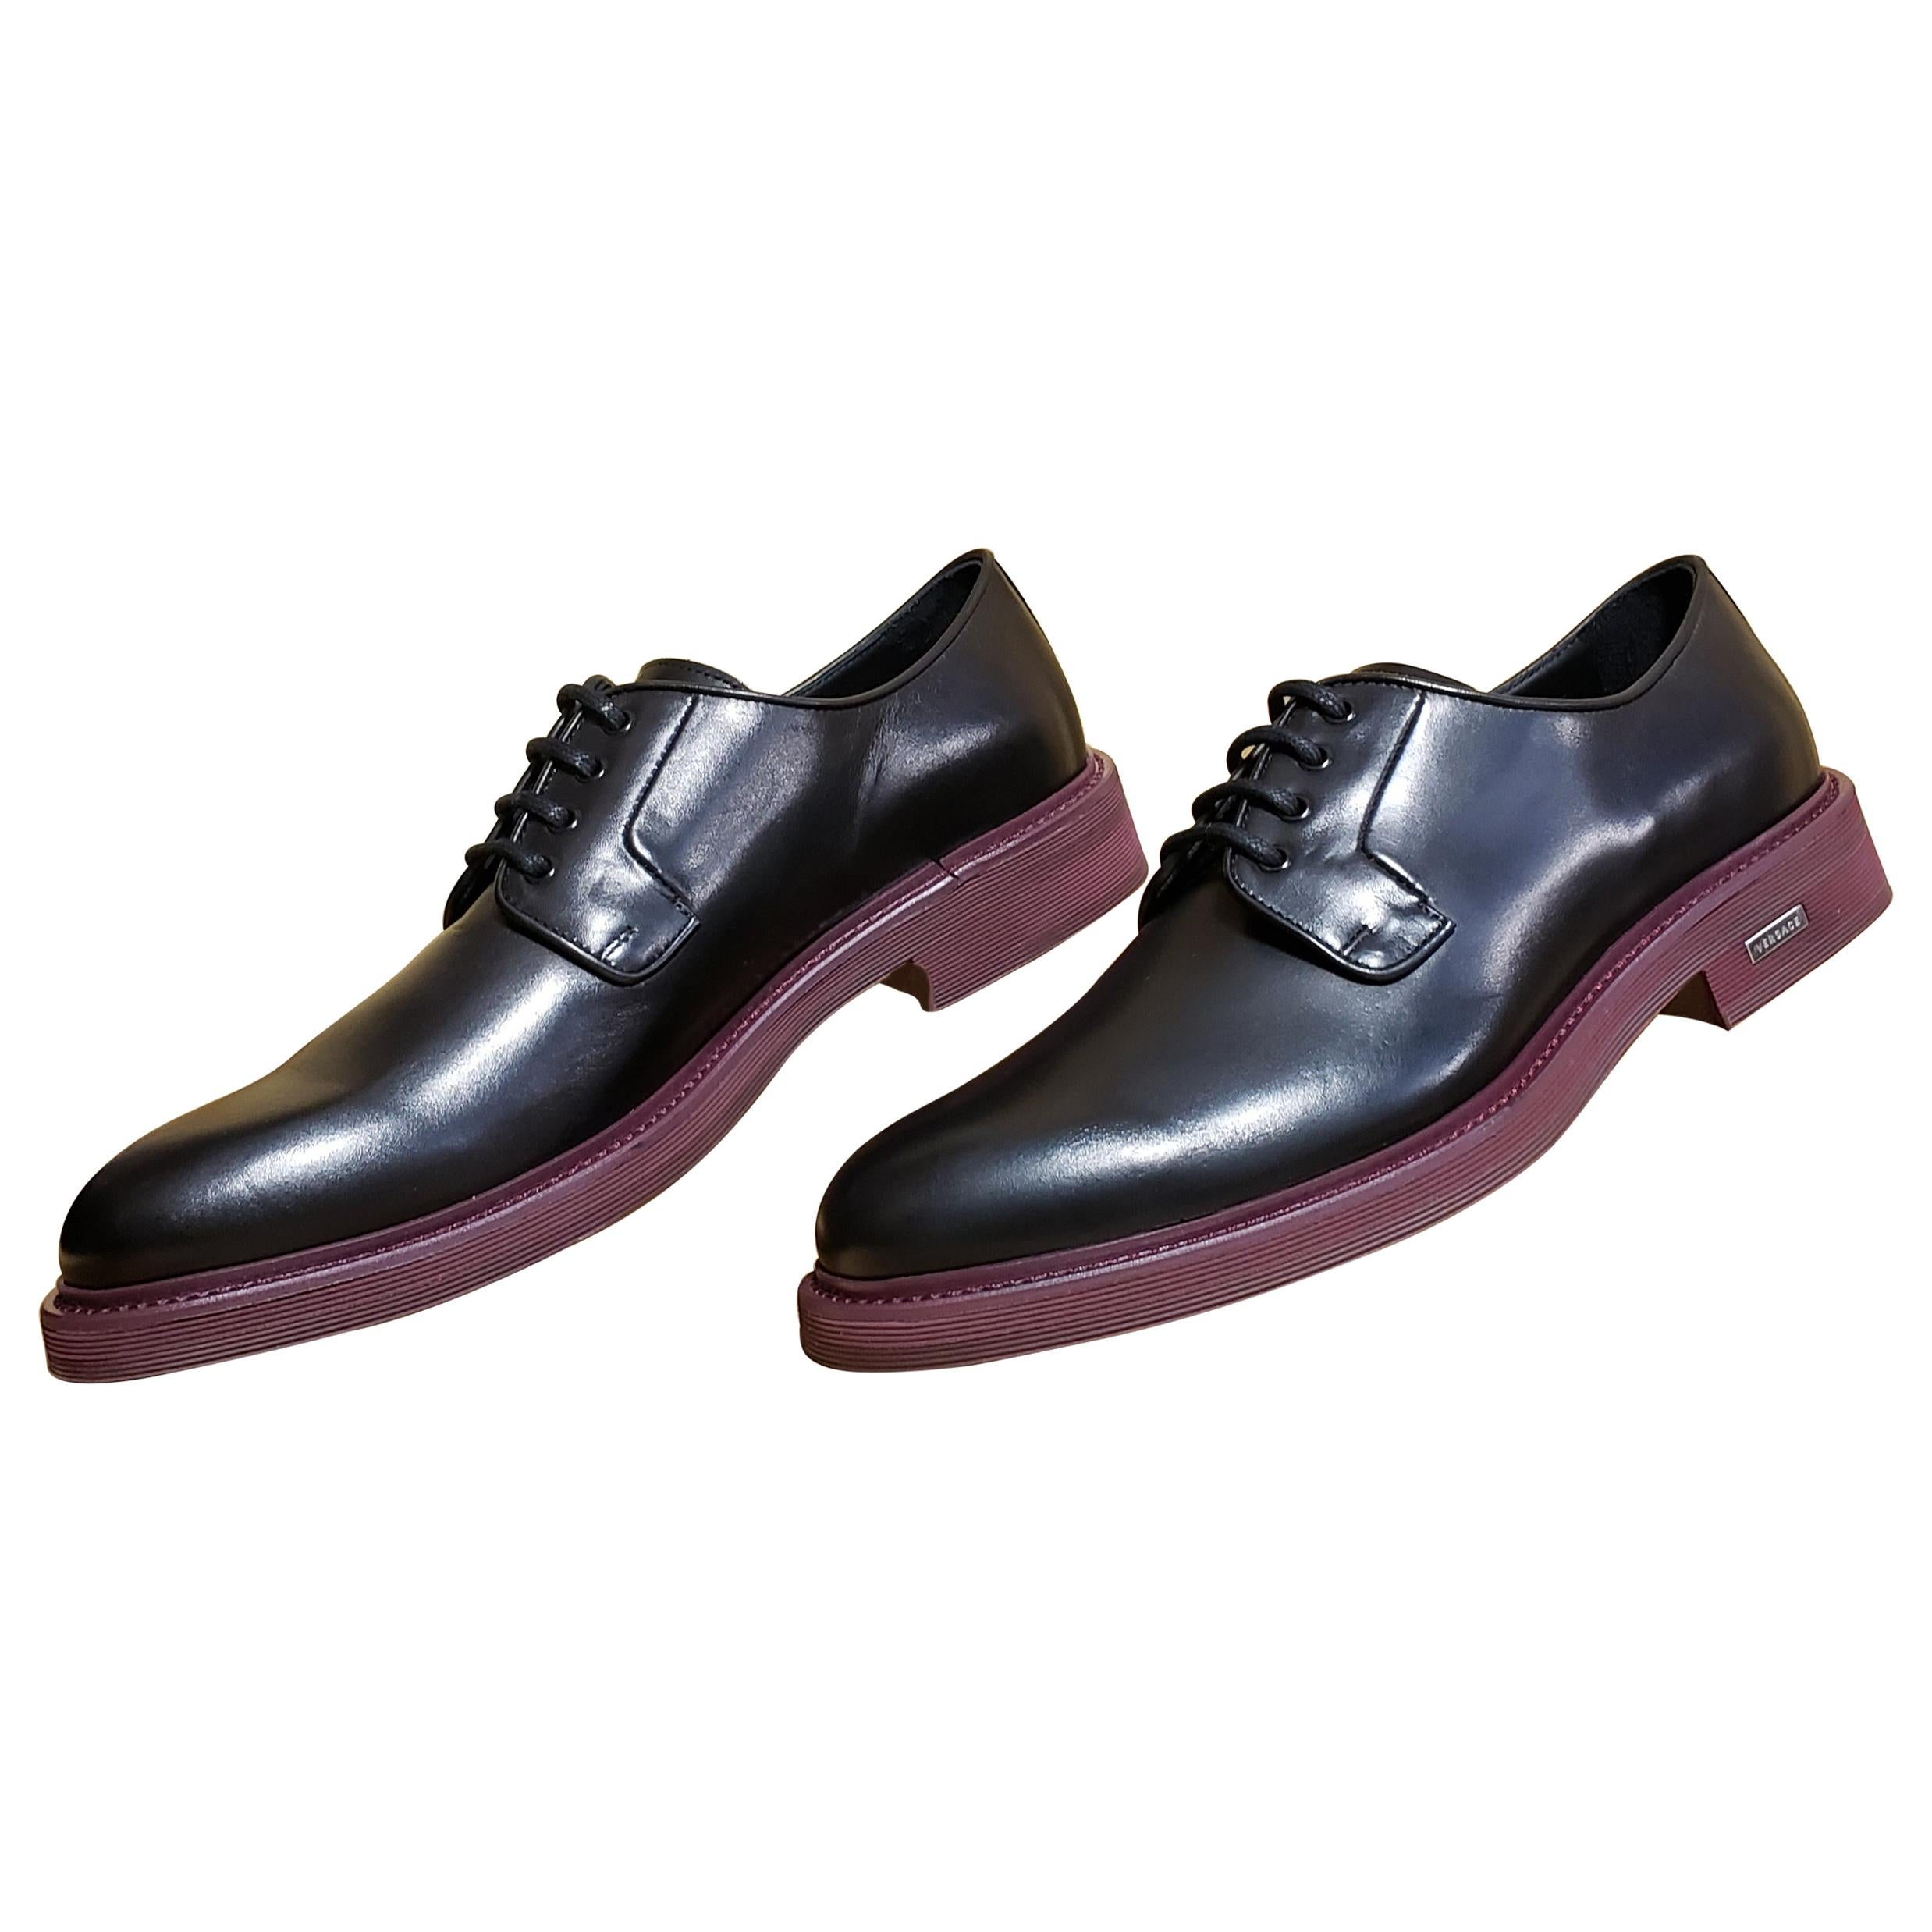 VERSACE BLACK LEATHER LOAFER SHOES with